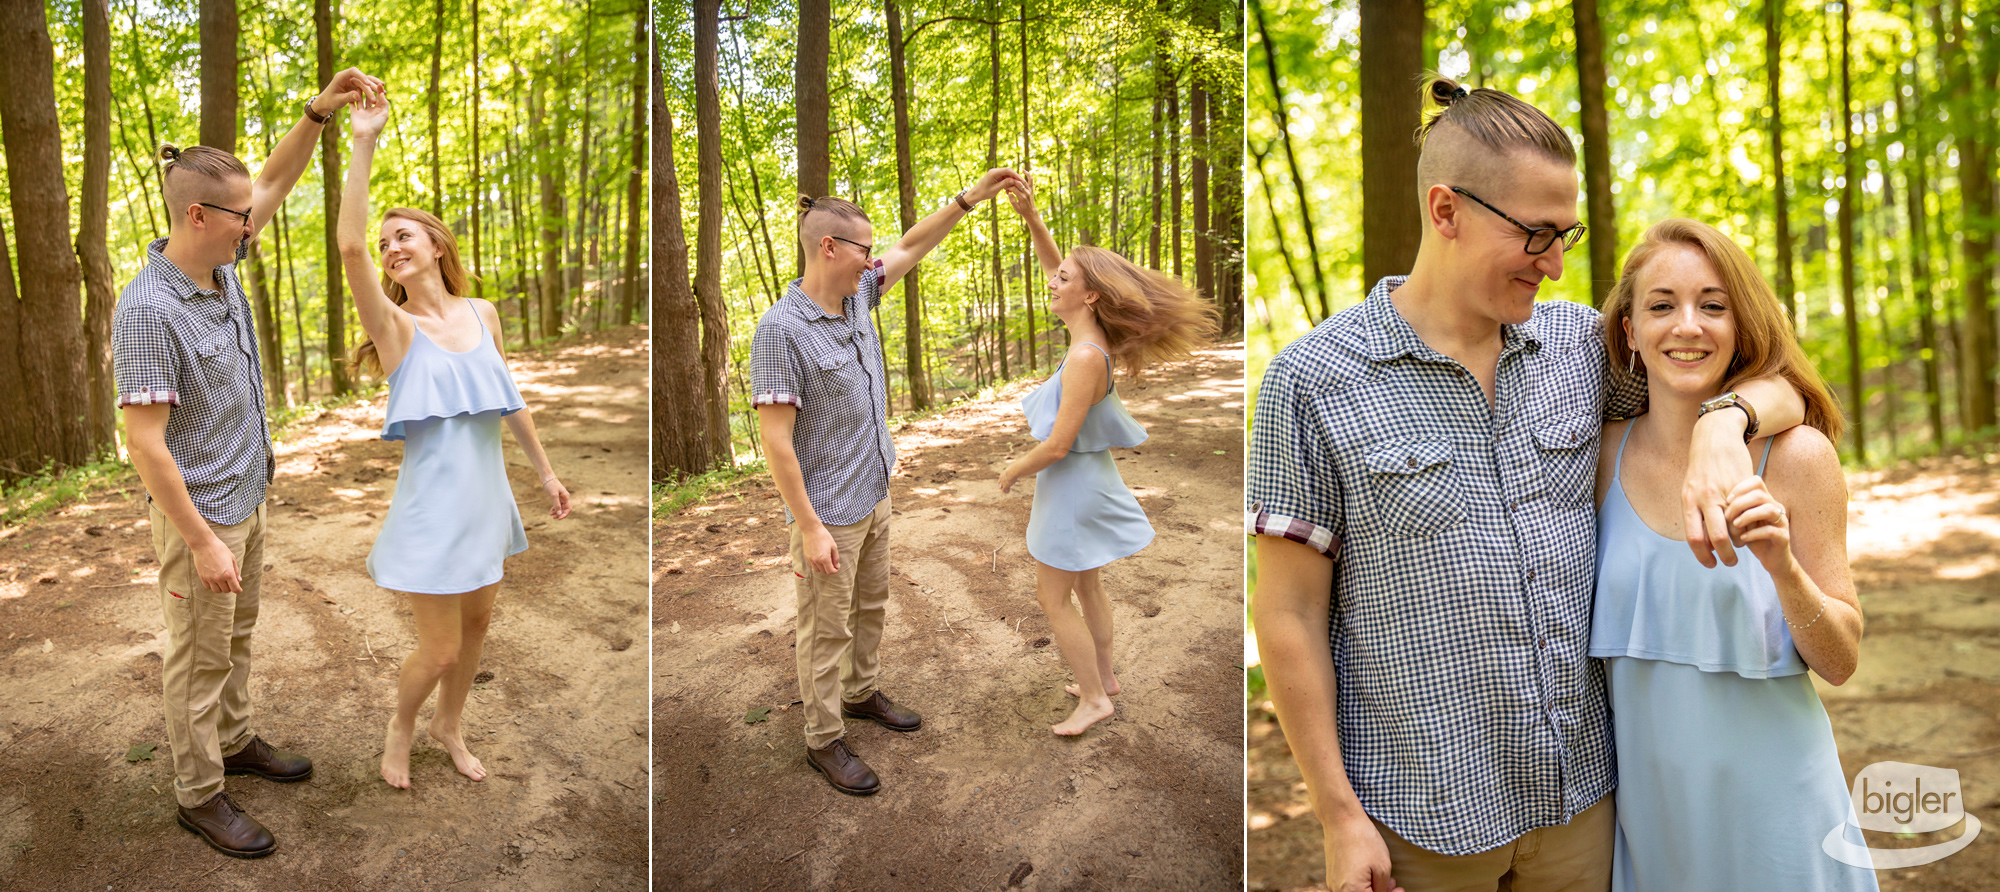 20180904_-_08_-_Carolyn_and_Matt_Yaddo_Gardens_EShoot